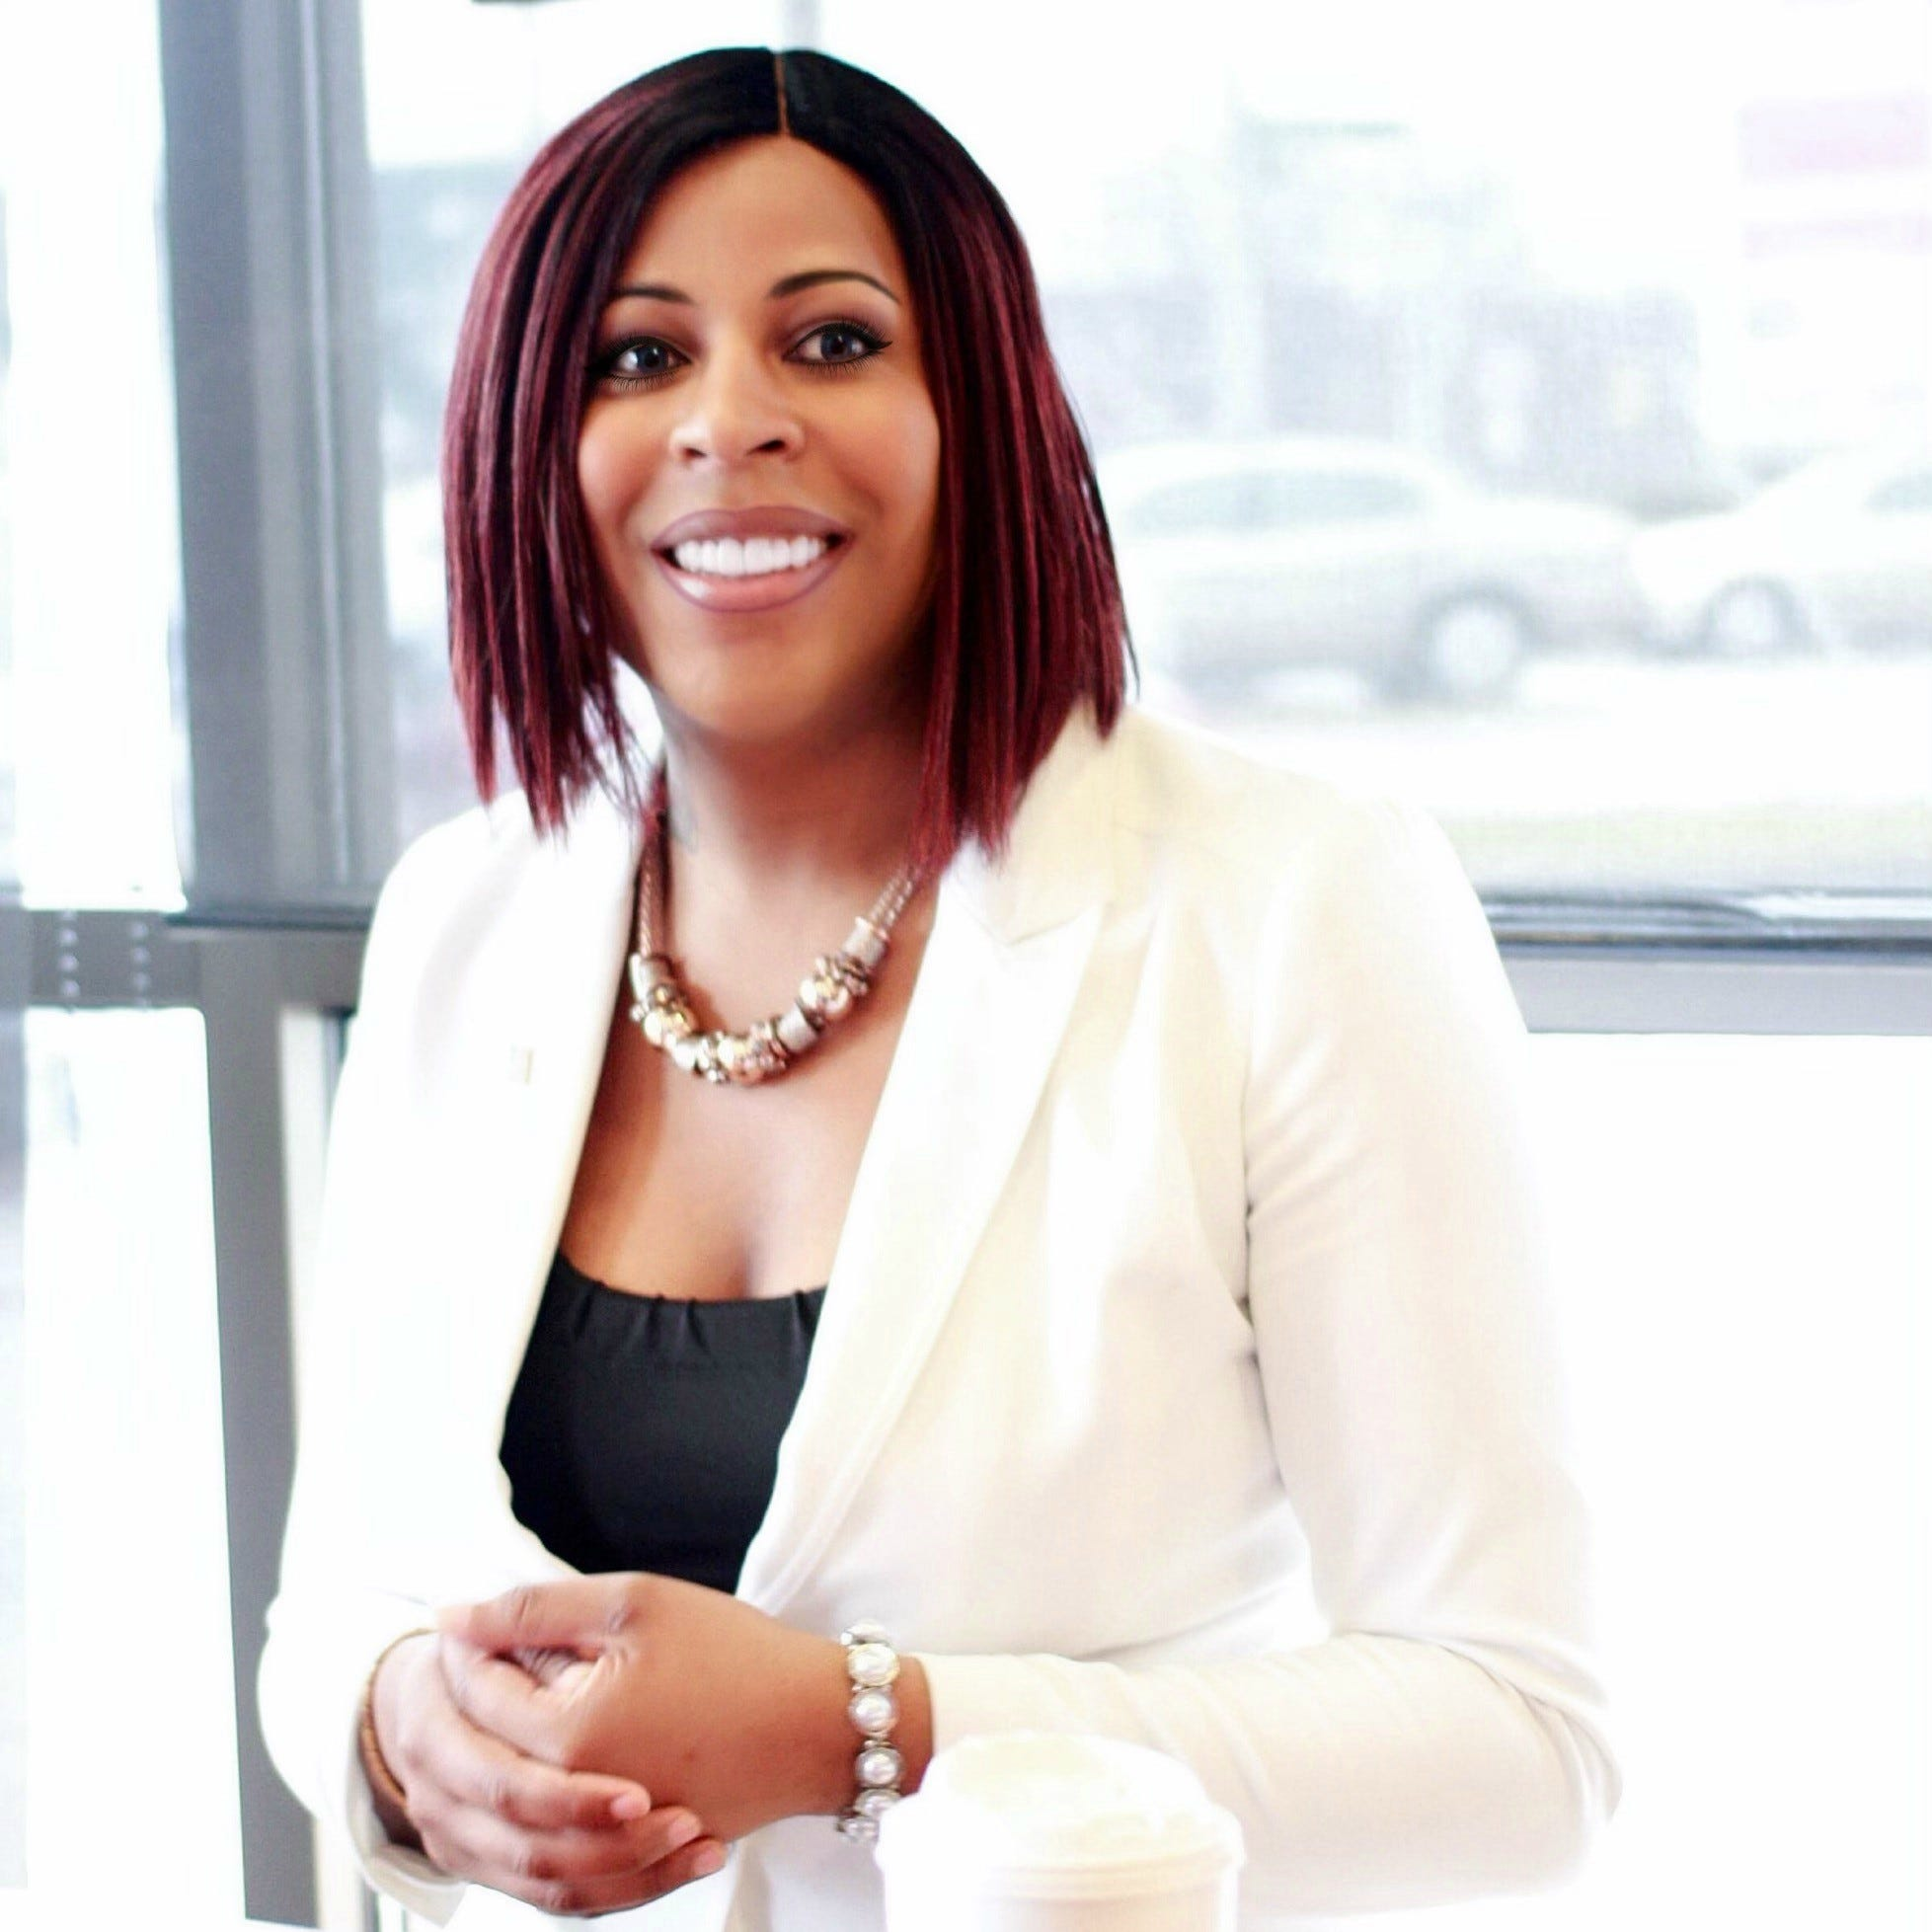 Meet presidential candidate Pam Rocker: She's transgender, wants free cars and legal weeds